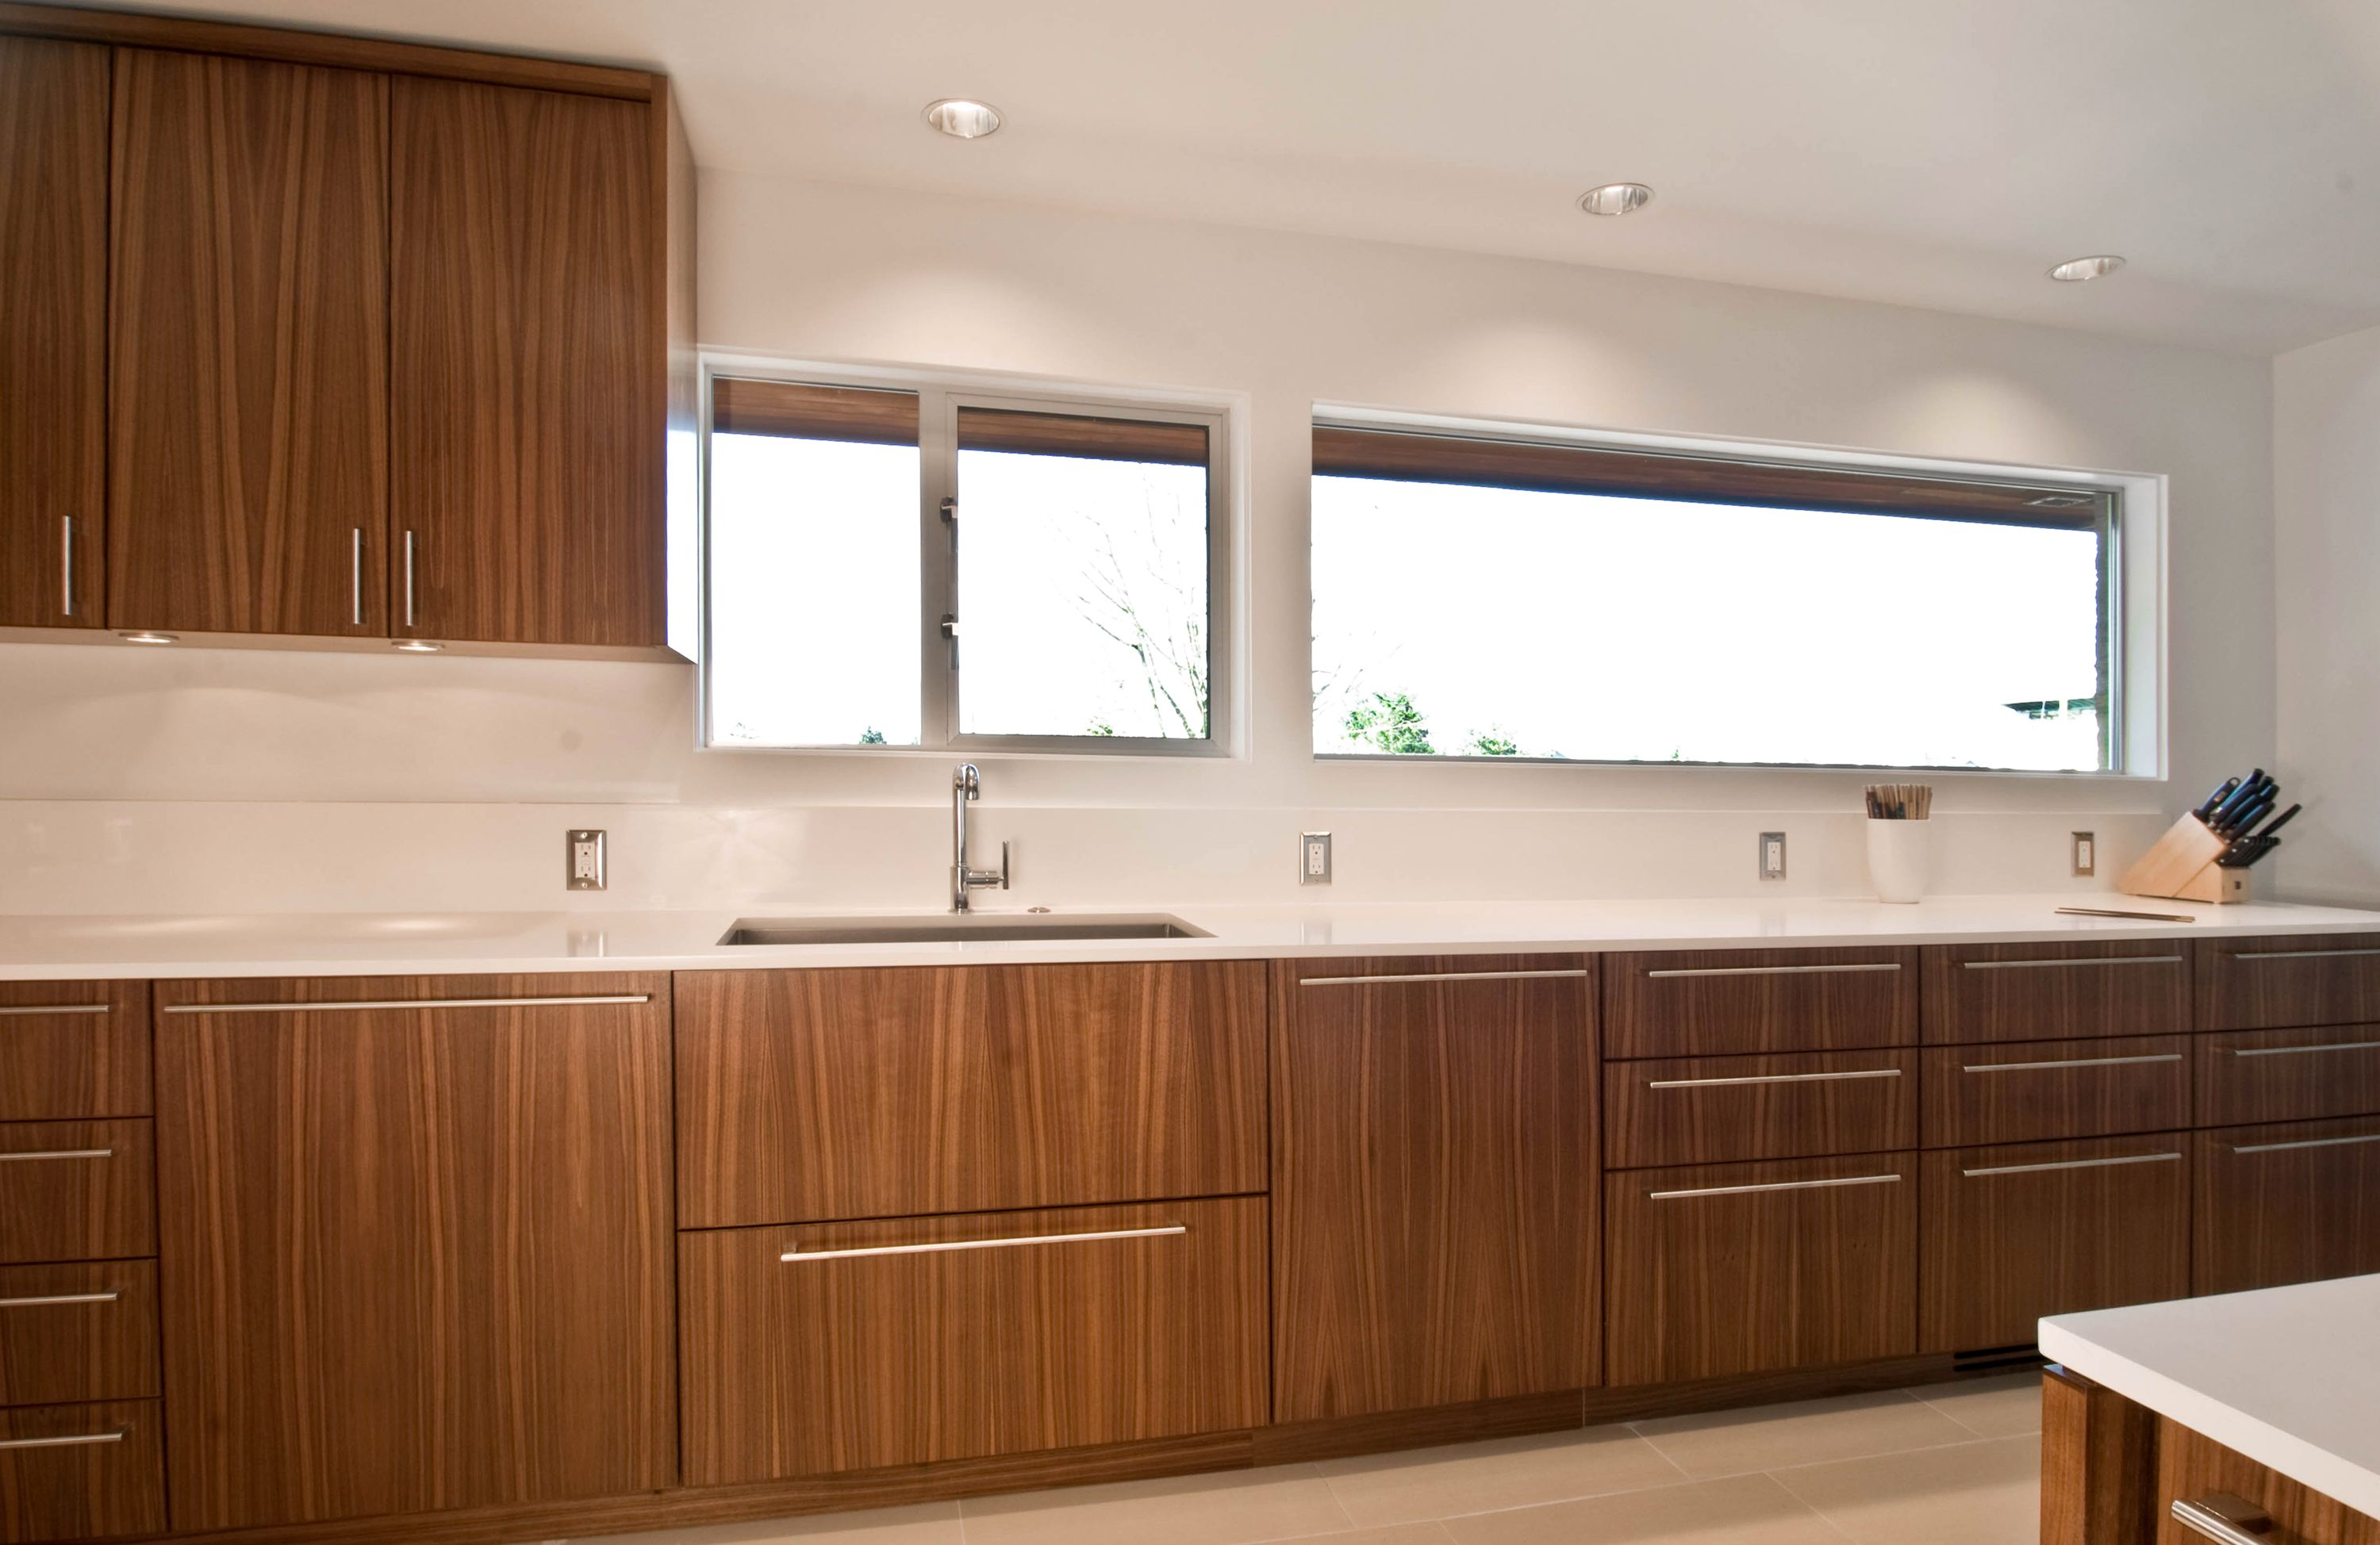 Modern Walnut Kitchen Design By Build Llc Cabinetry By Special Projects Division Walnut Kitchen Kitchen Remodel Design Modern Kitchen